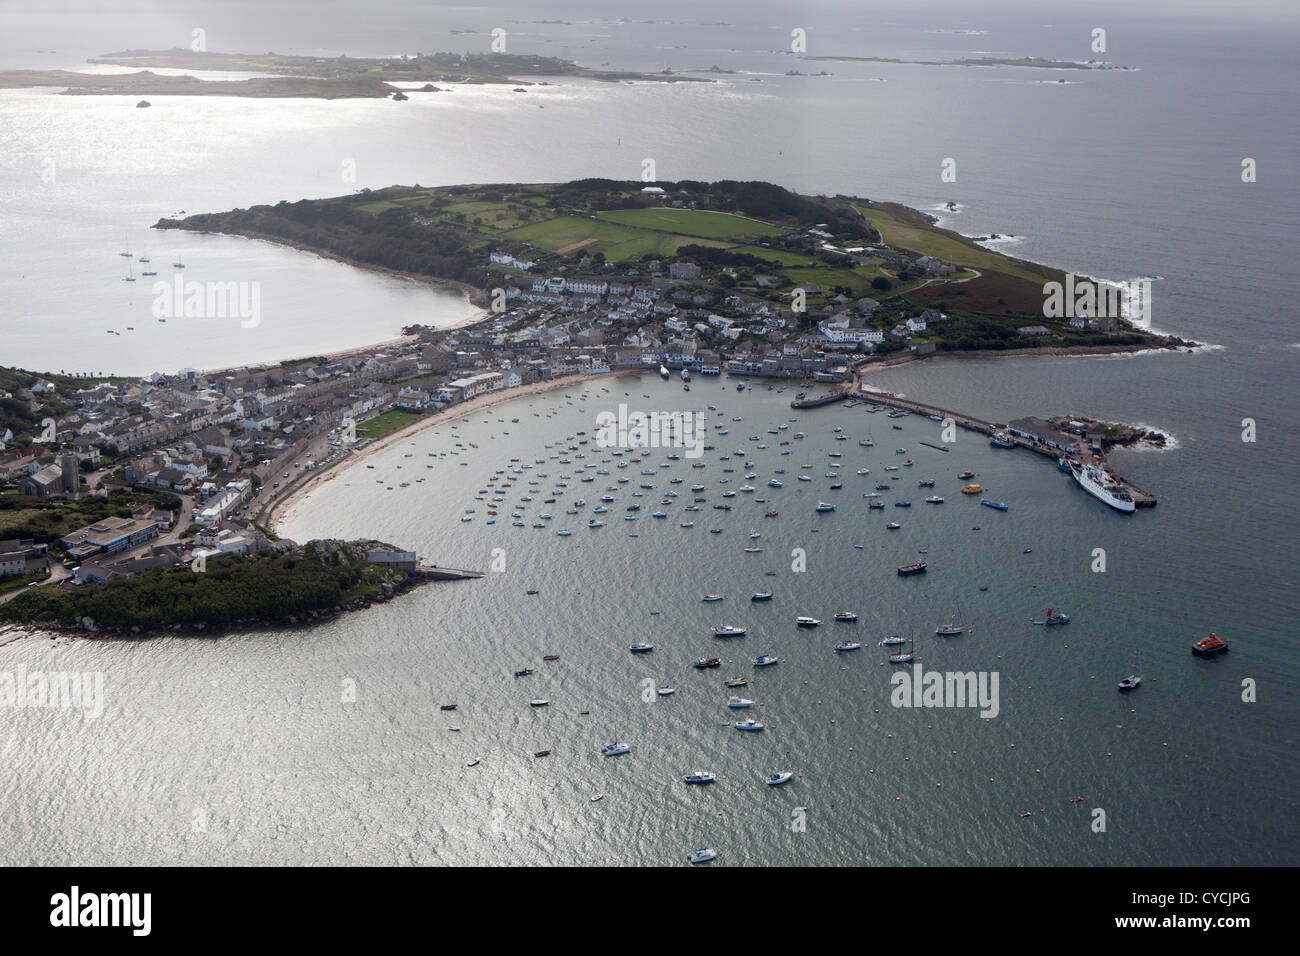 Aerial view of the harbour at Hugh Town, St Mary's, Isles of Scilly - Stock Image